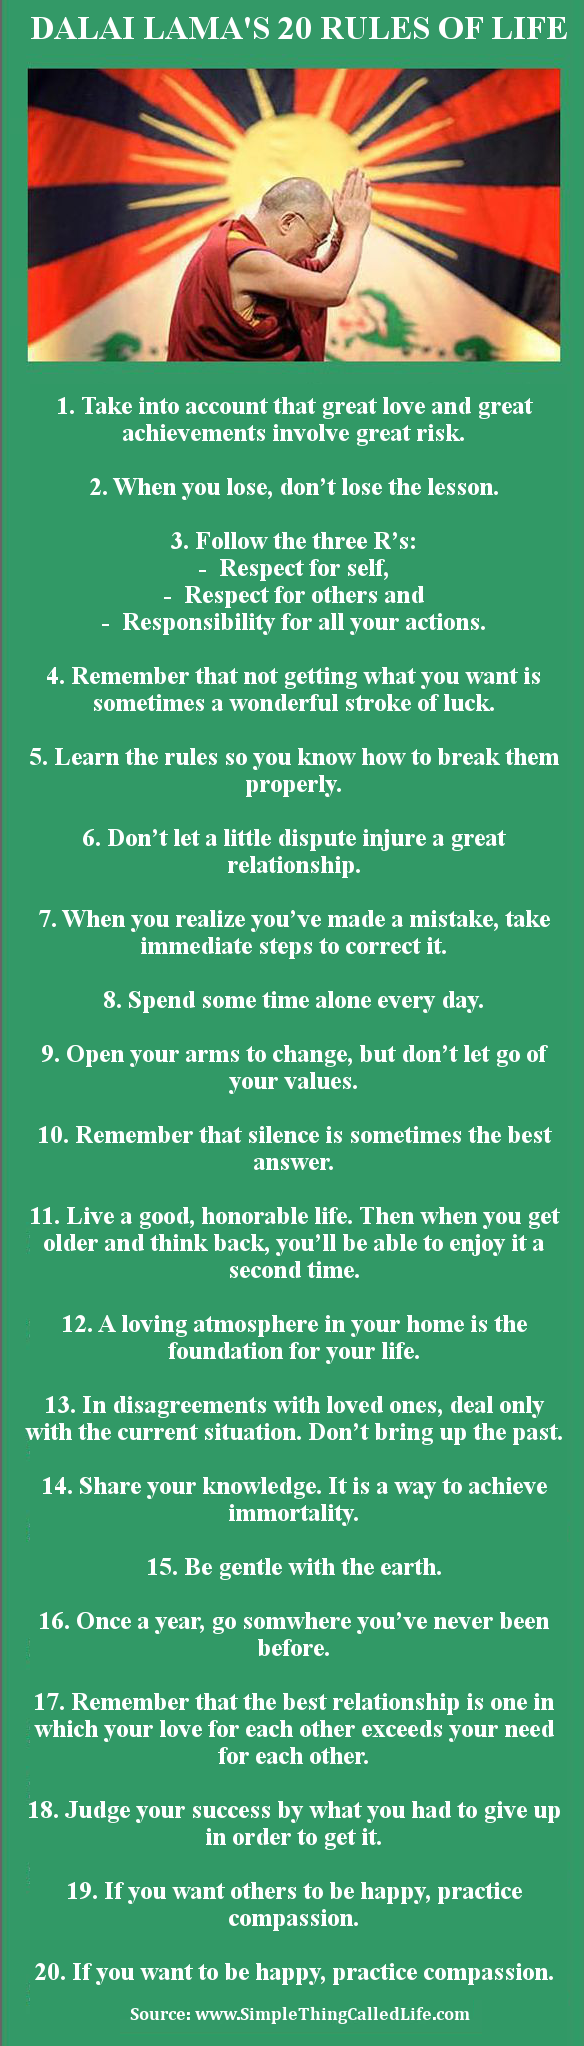 Great Quotes About Life 20 Rules From The Dalai Lama On Living A Good Life Image